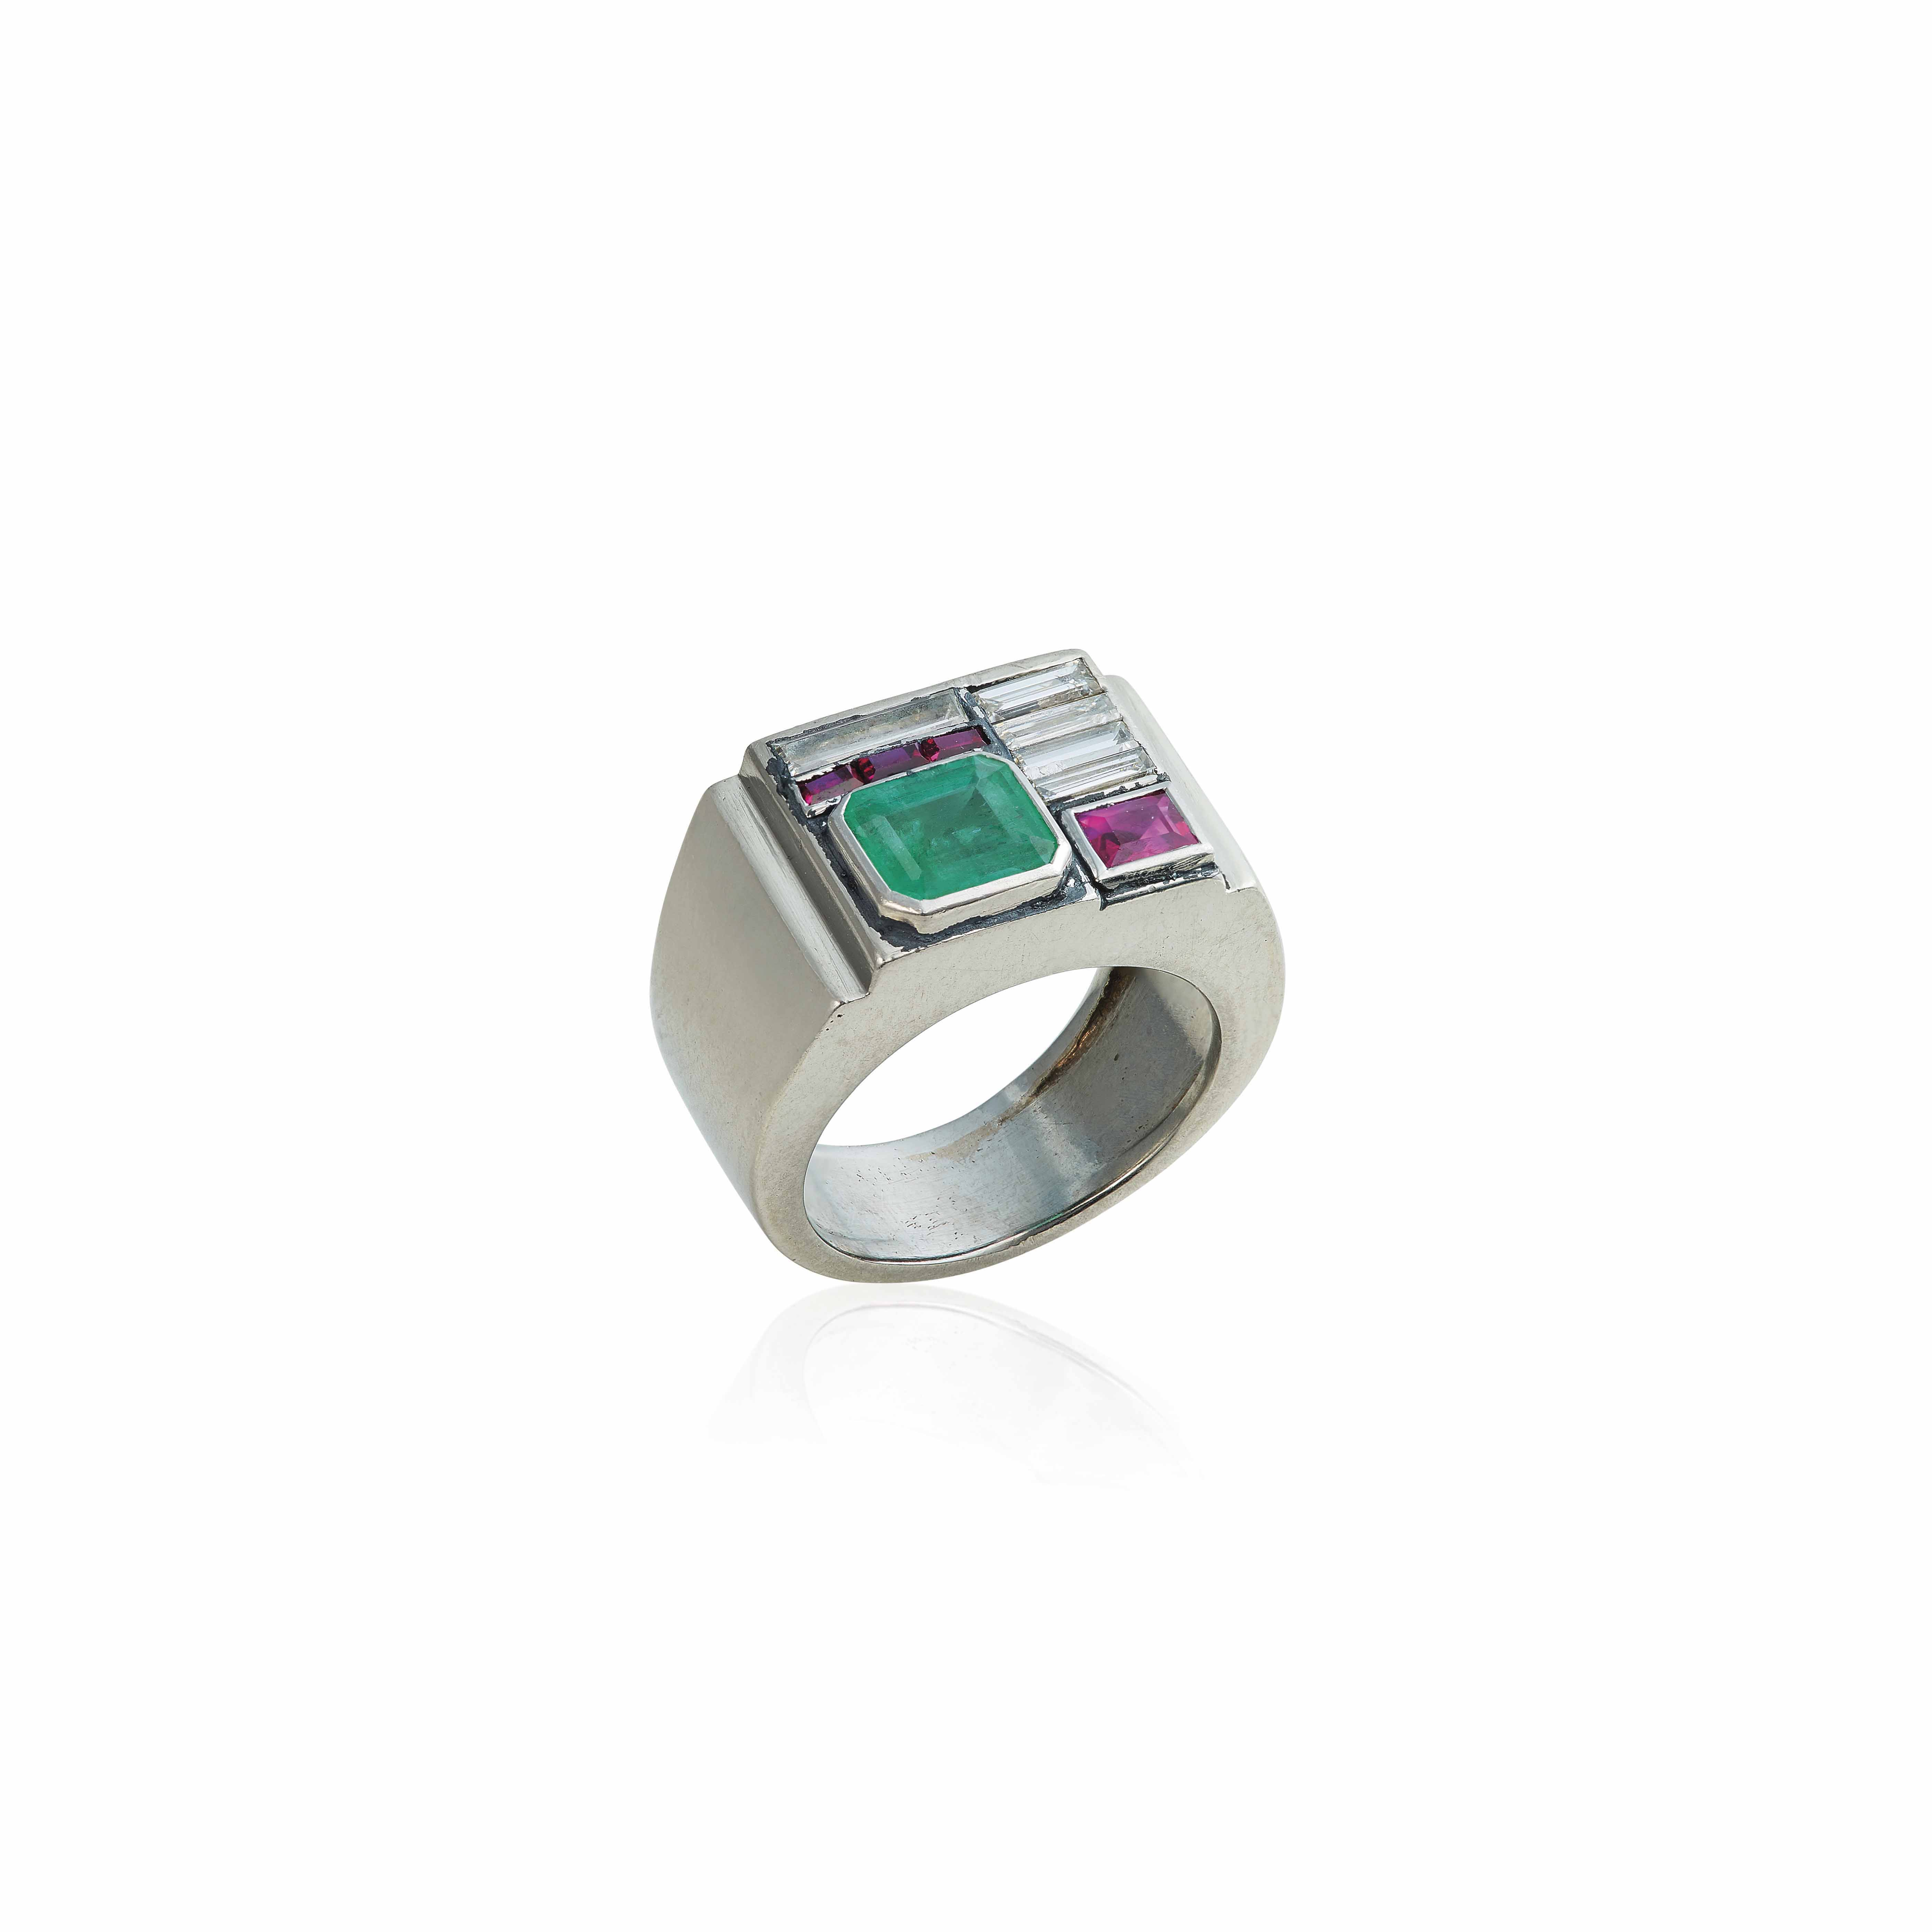 AN ART DÉCO EMERALD, DIAMOND AND SYNTHETIC RUBY RING, BY PAUL BRANDT